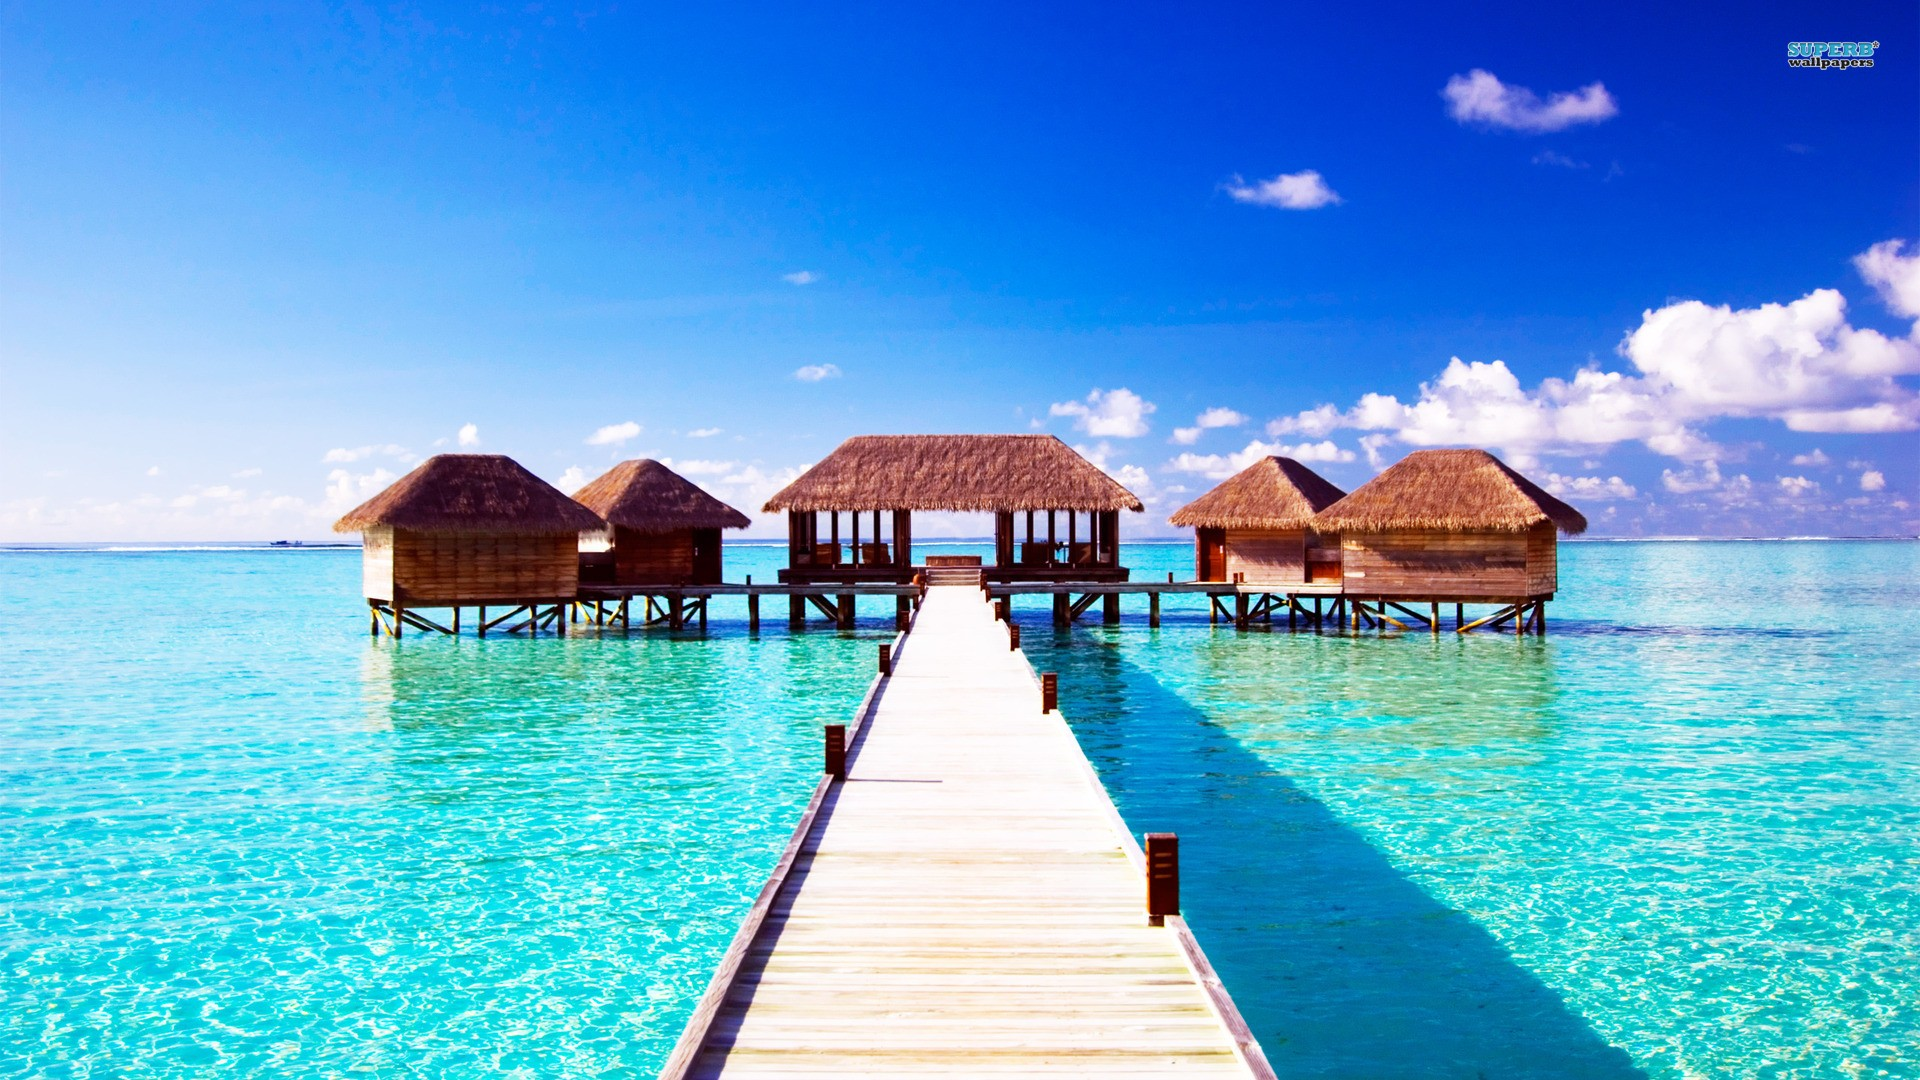 Charmant Dimensions:1920x1080 1600x900 1280x720. Cool HD Wallpaper   Summer Maldives  Beach ...